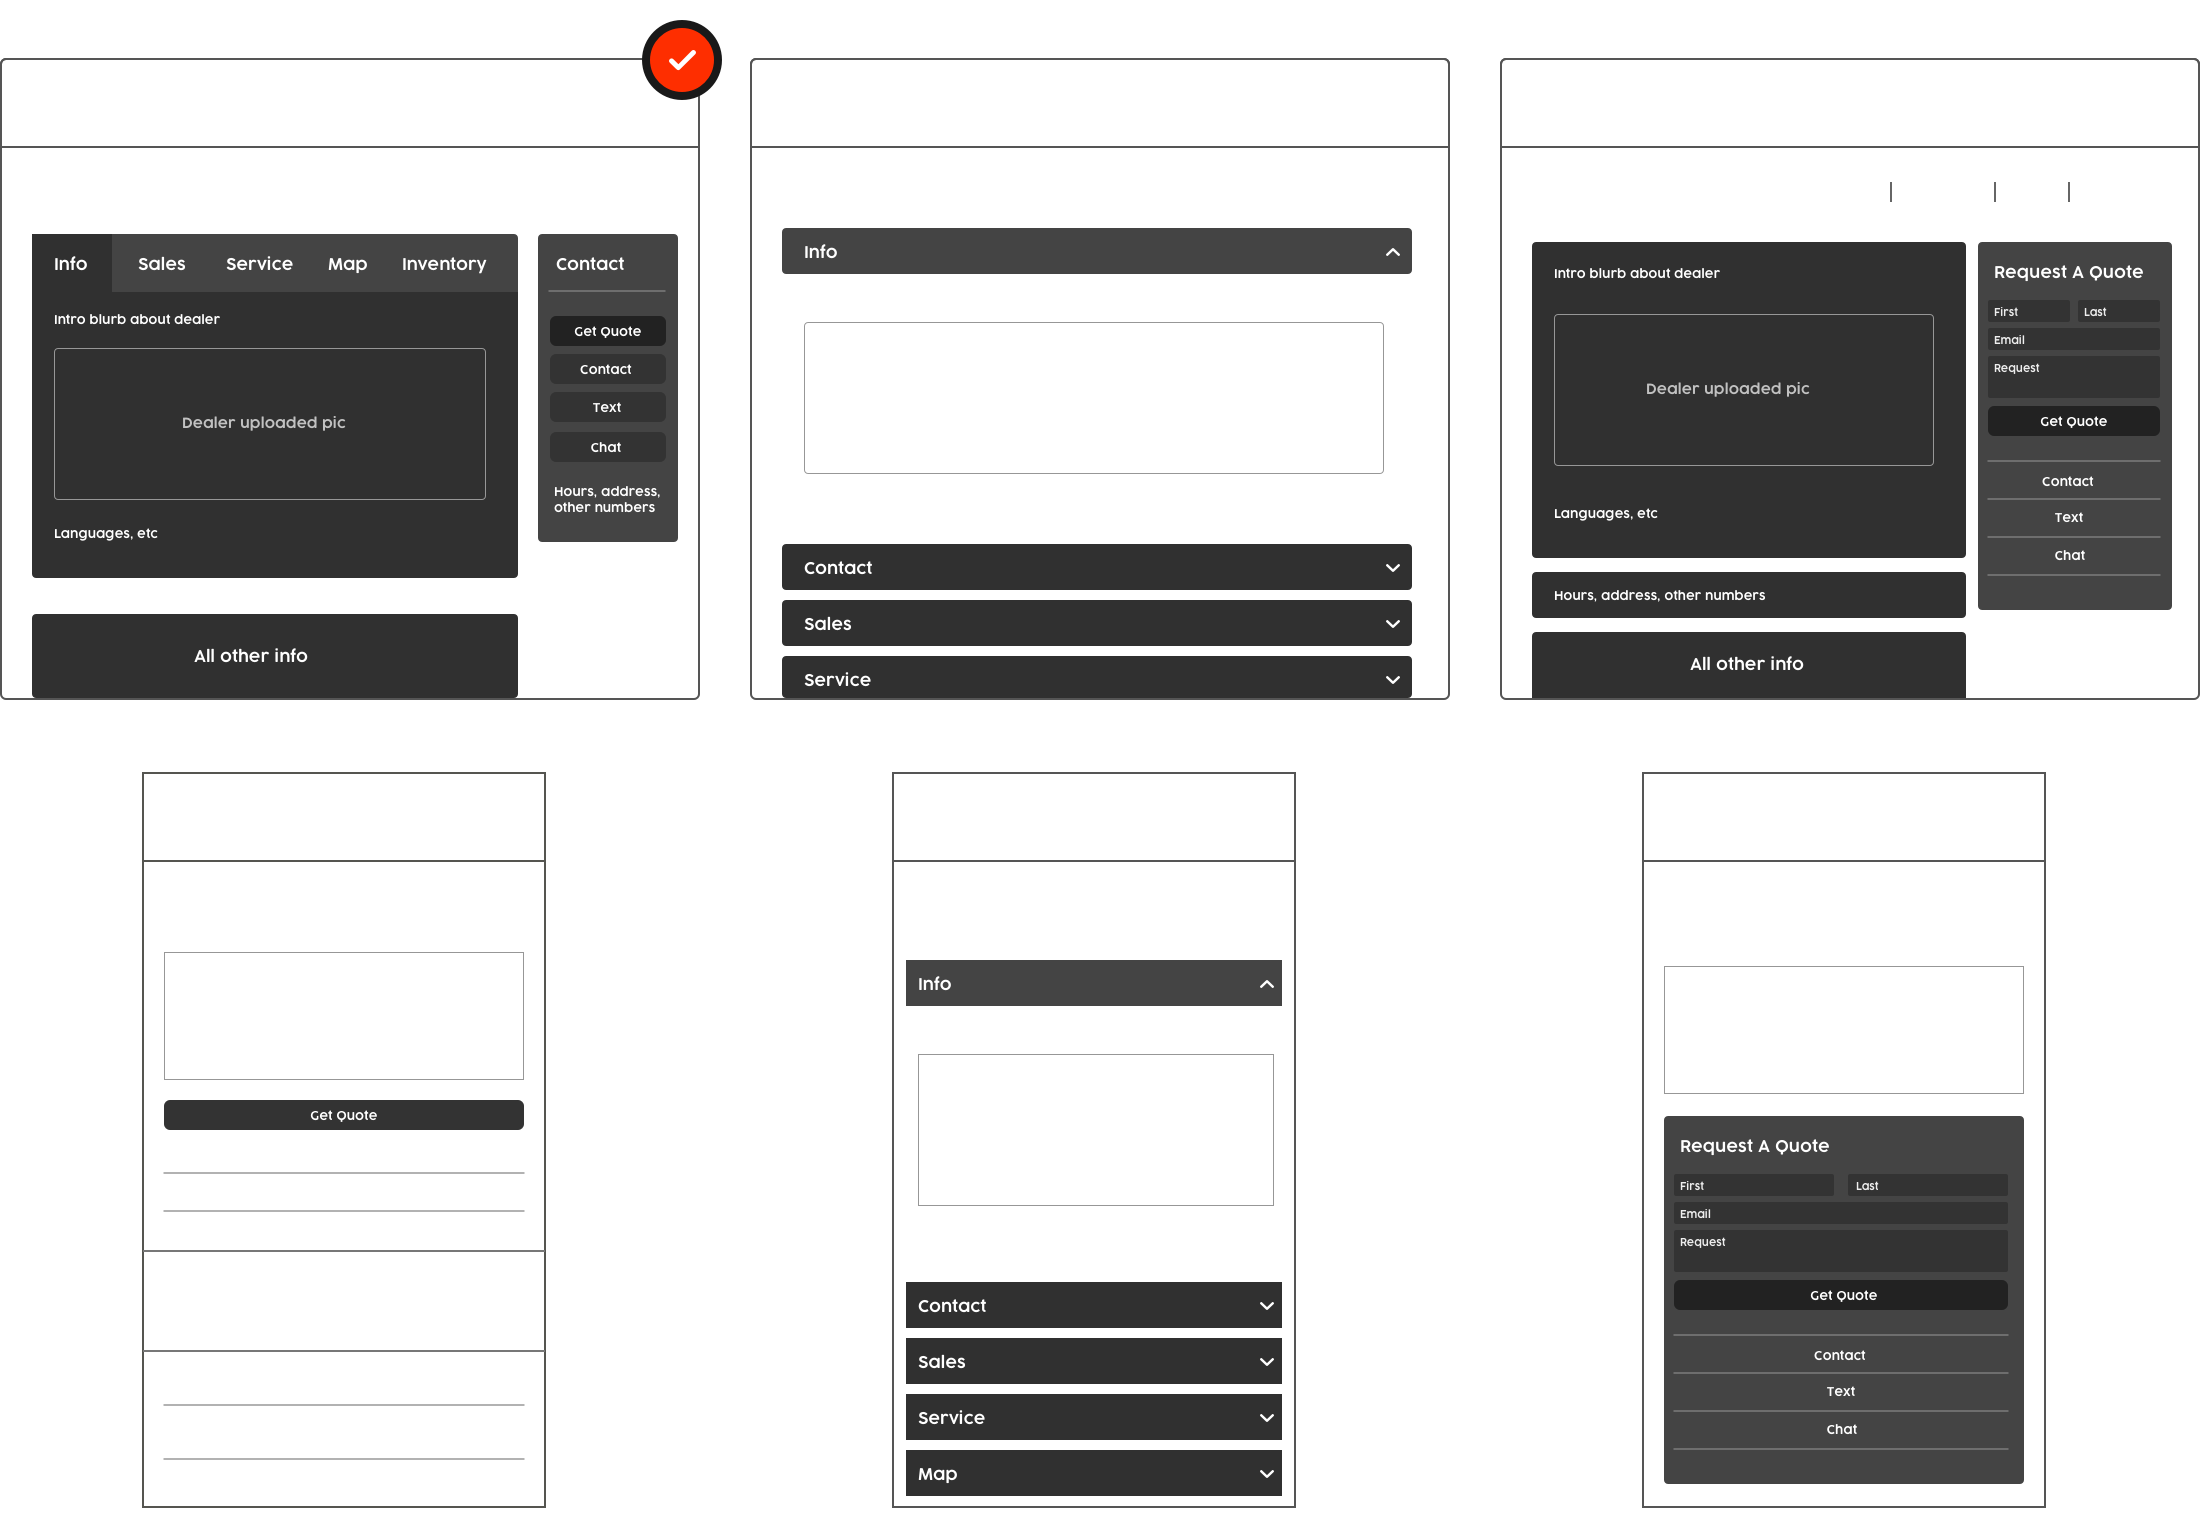 The dealership wireframes